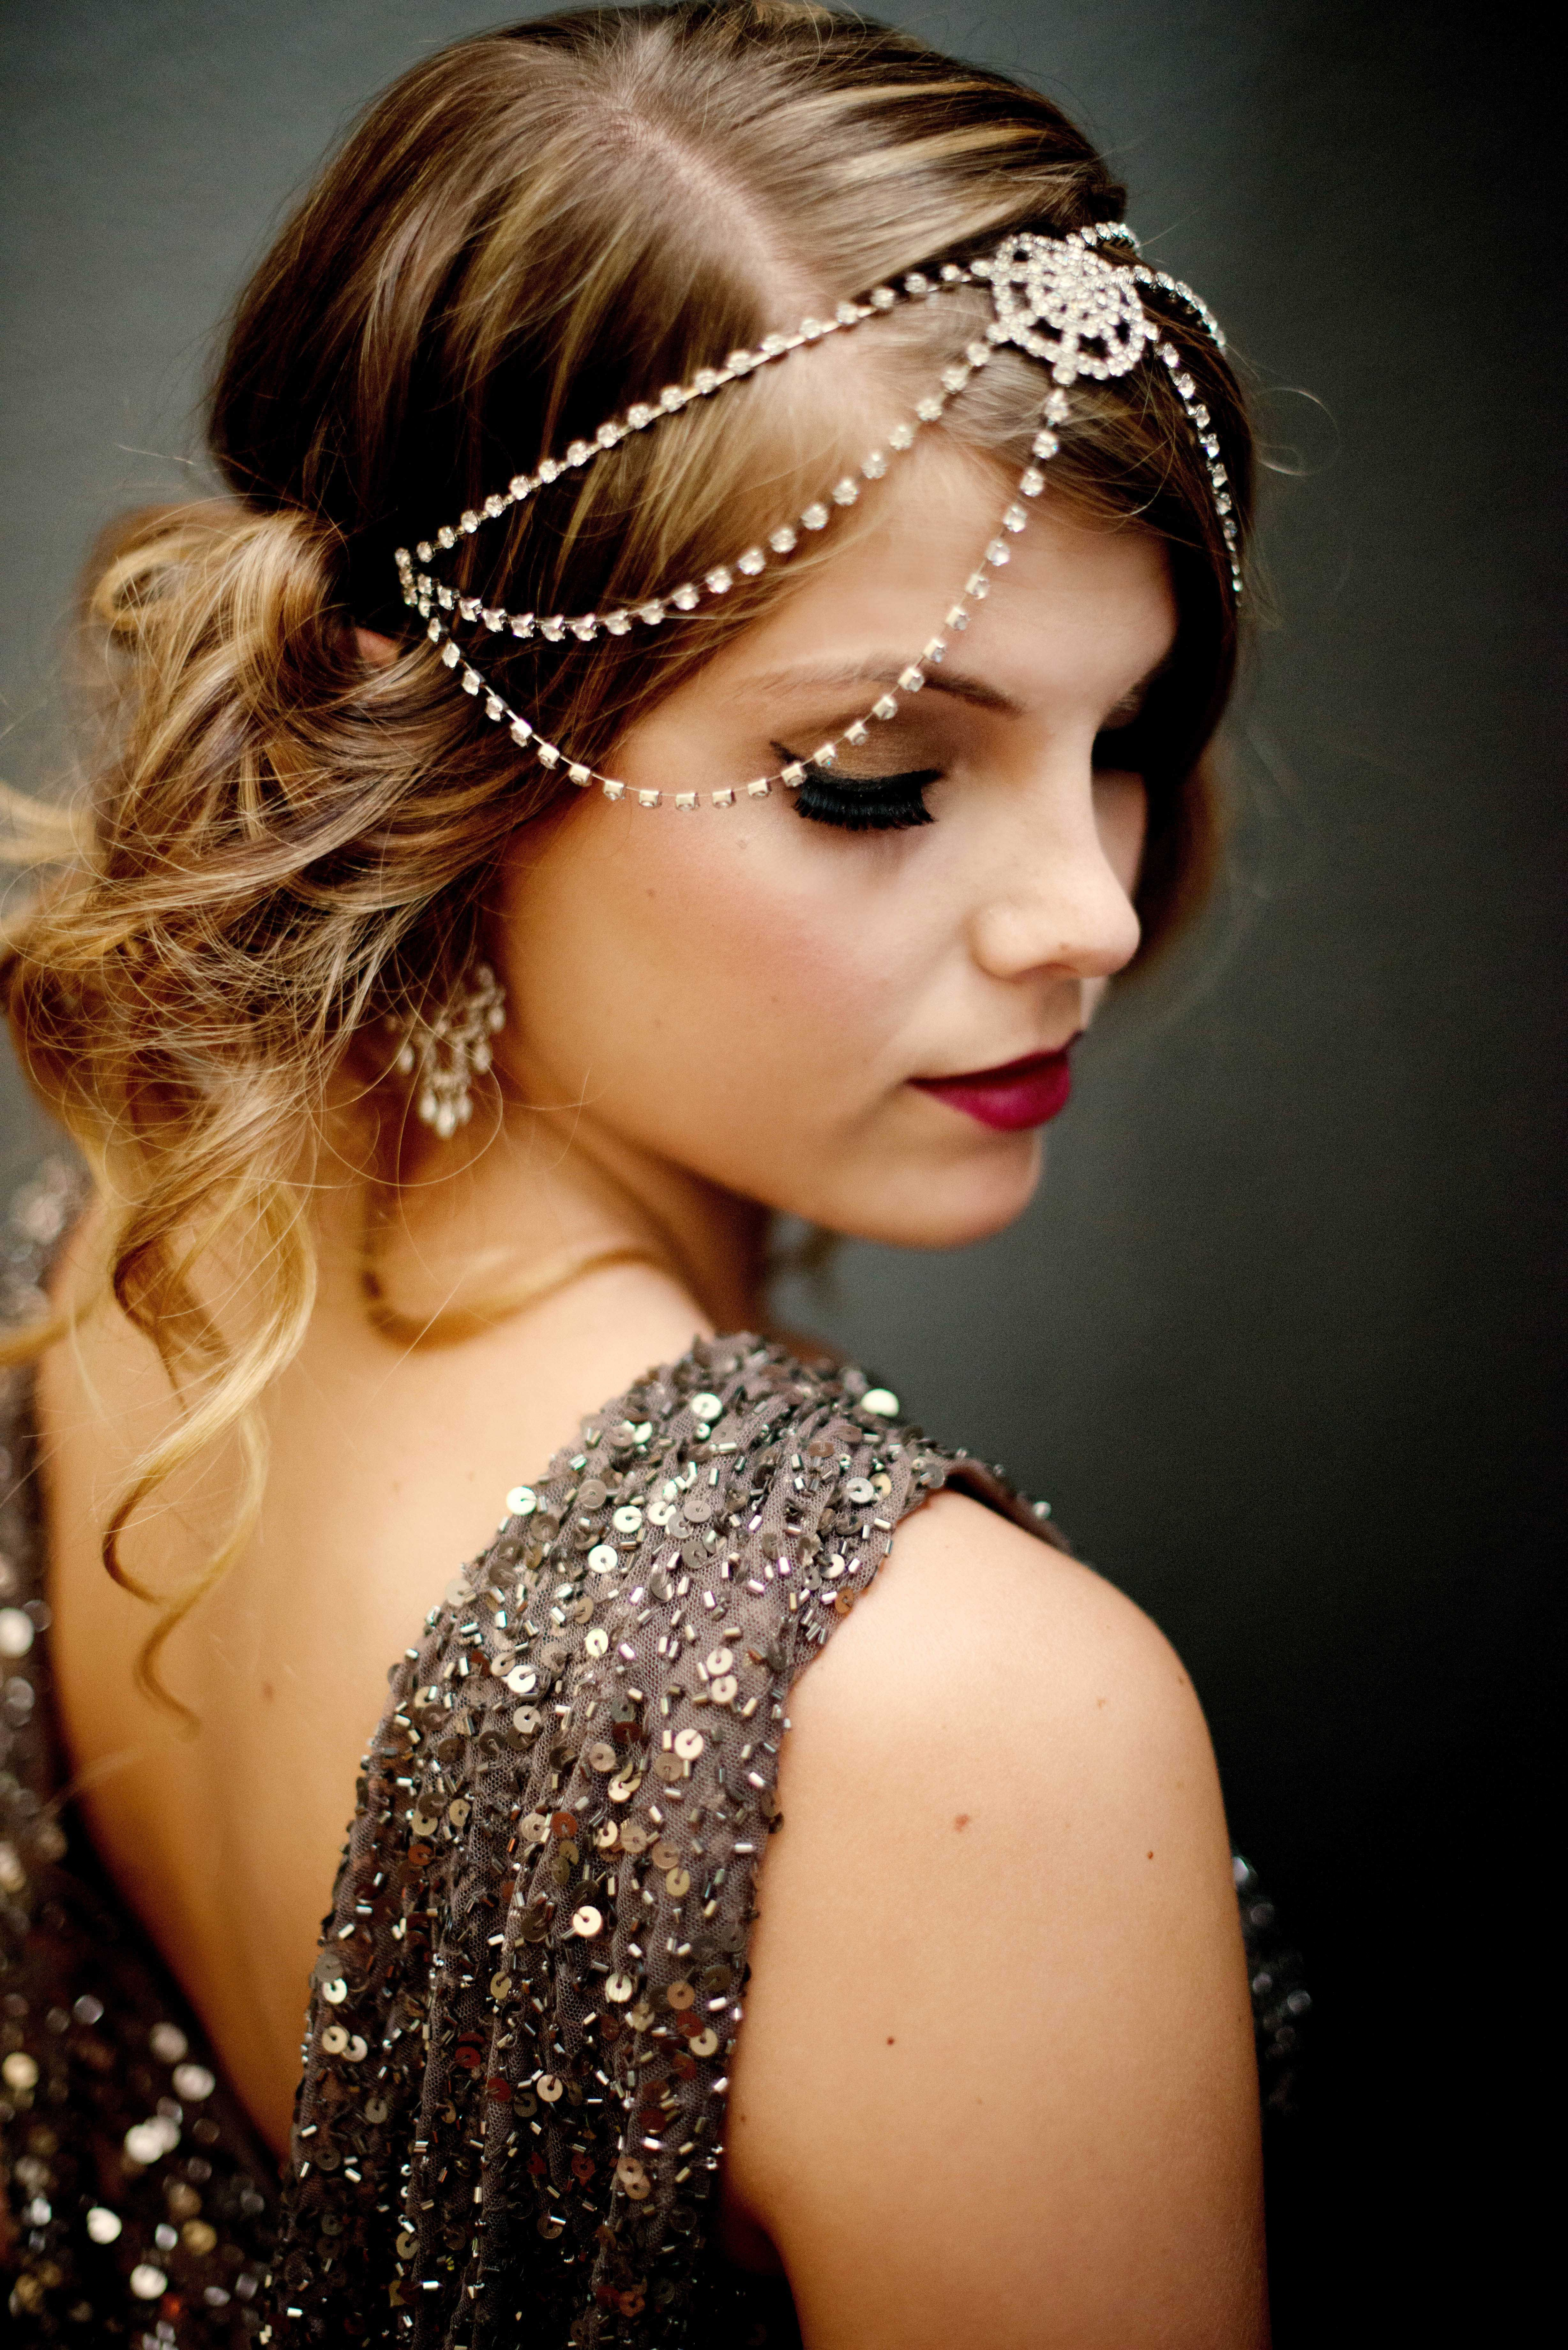 Pretty-Hairstyles-for-Long-Hair-1920s | Great Gatsby in ...